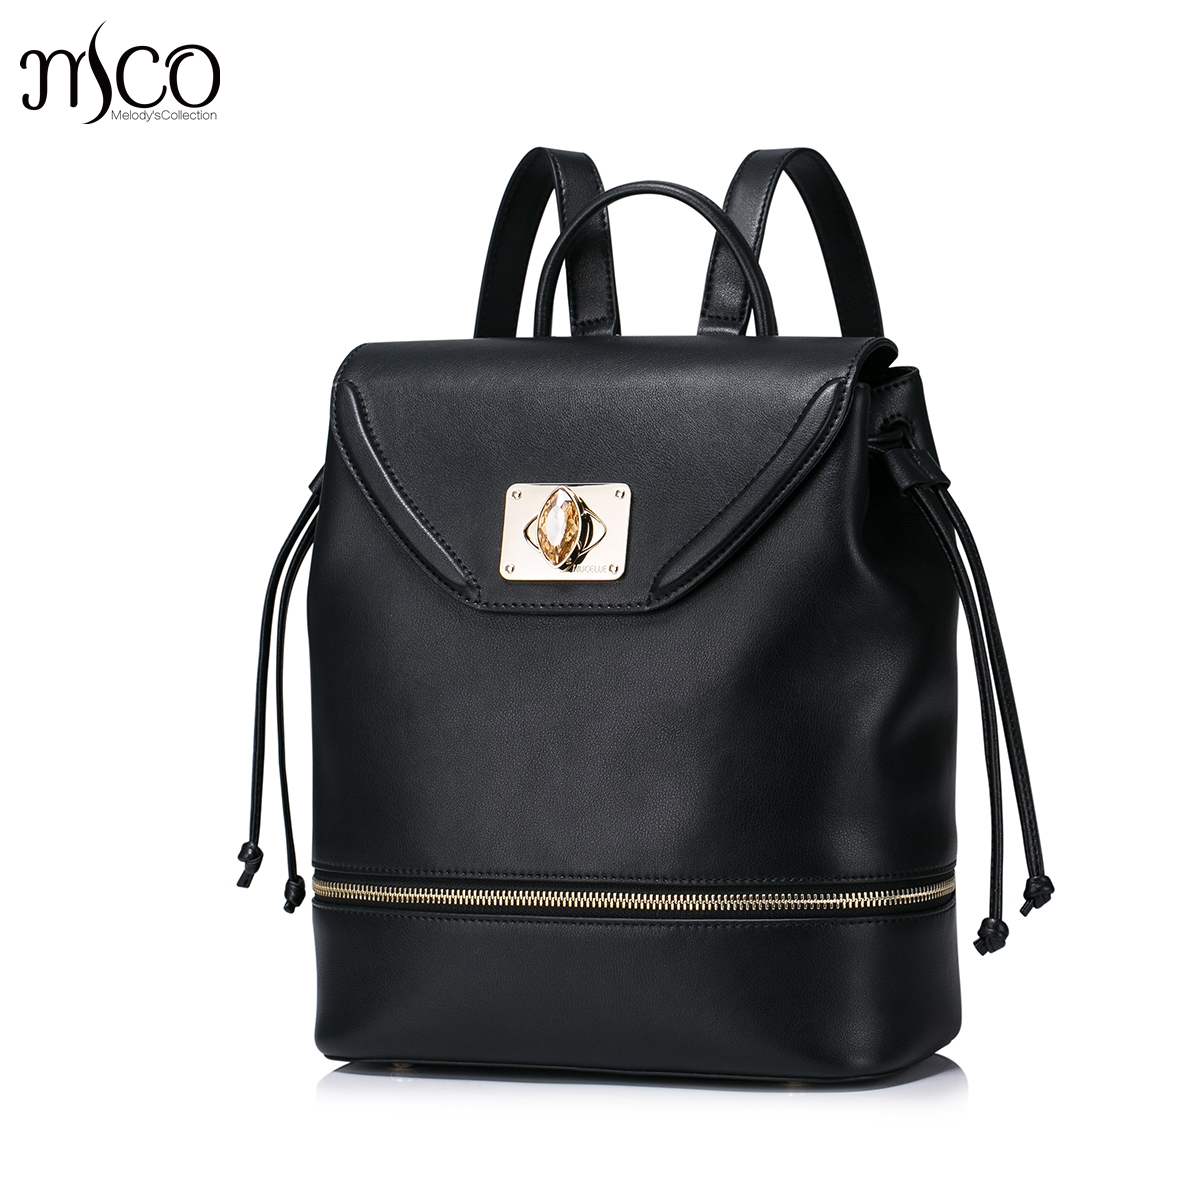 Women's Zip Split Leather Backpack Female Diamond Lock Daily Shoulder Drawstring Bags Ladies Travel bags Daypack For Girls пакеты zip lock в минске